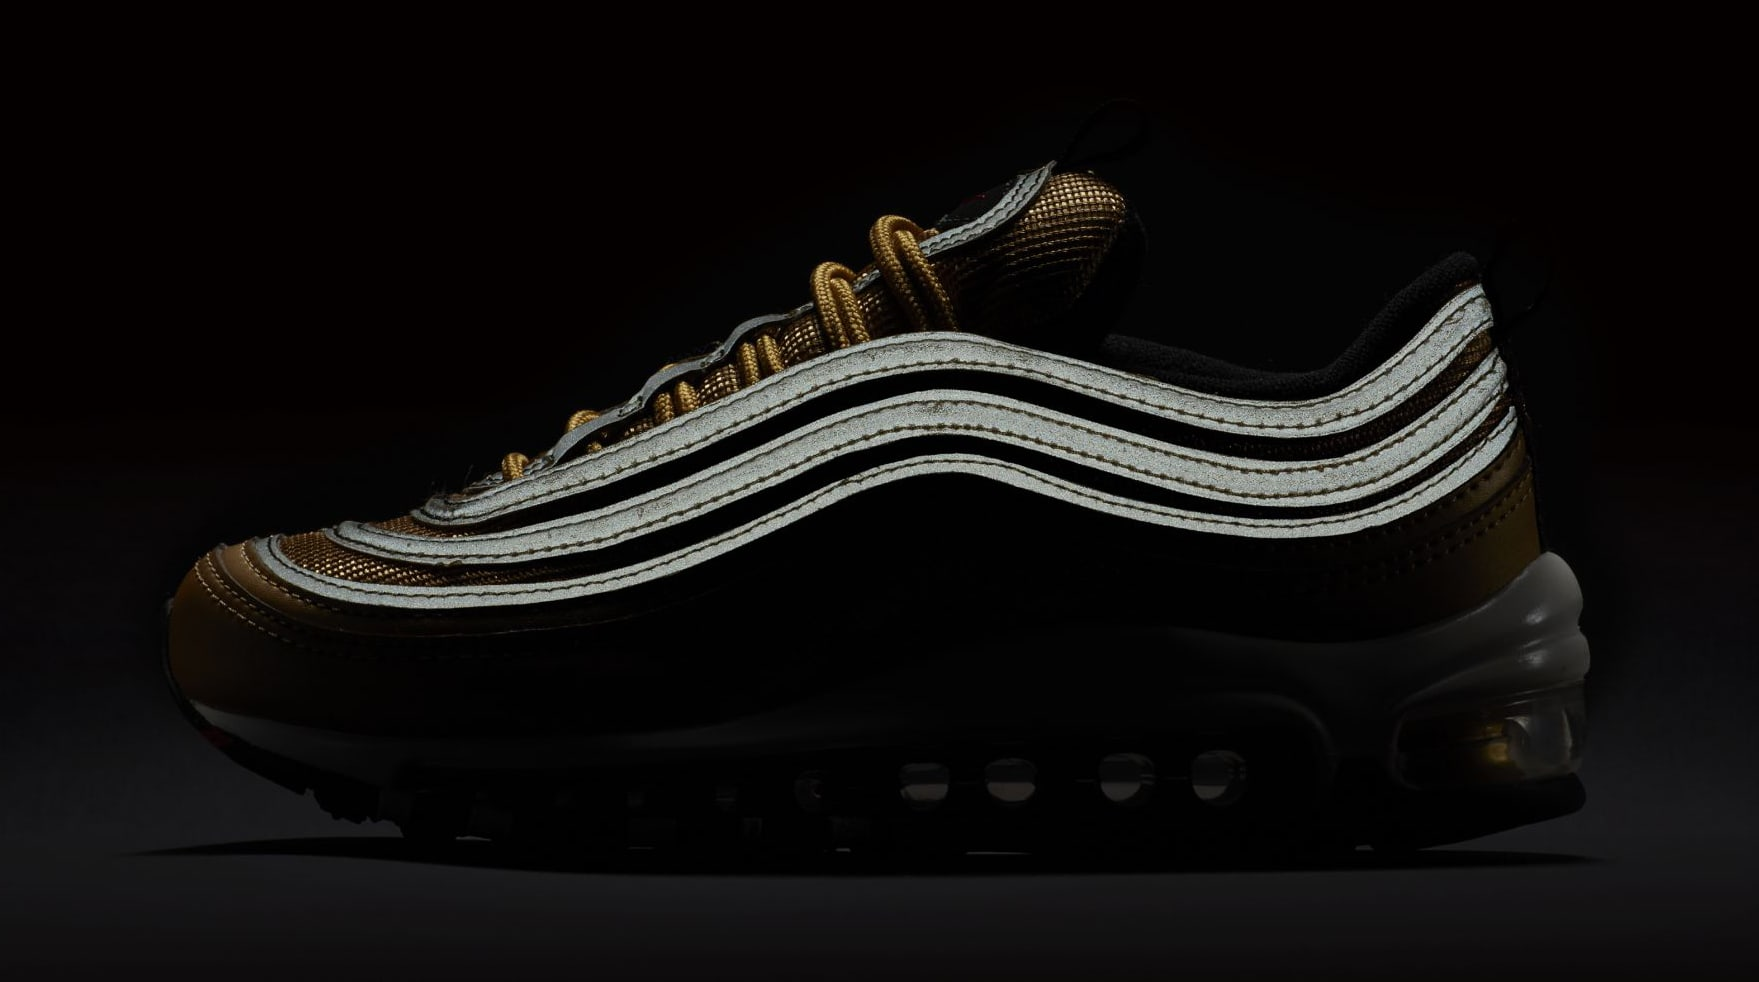 Image via NikeUS11 · Gold Nike Air Max 97 GS Reflective